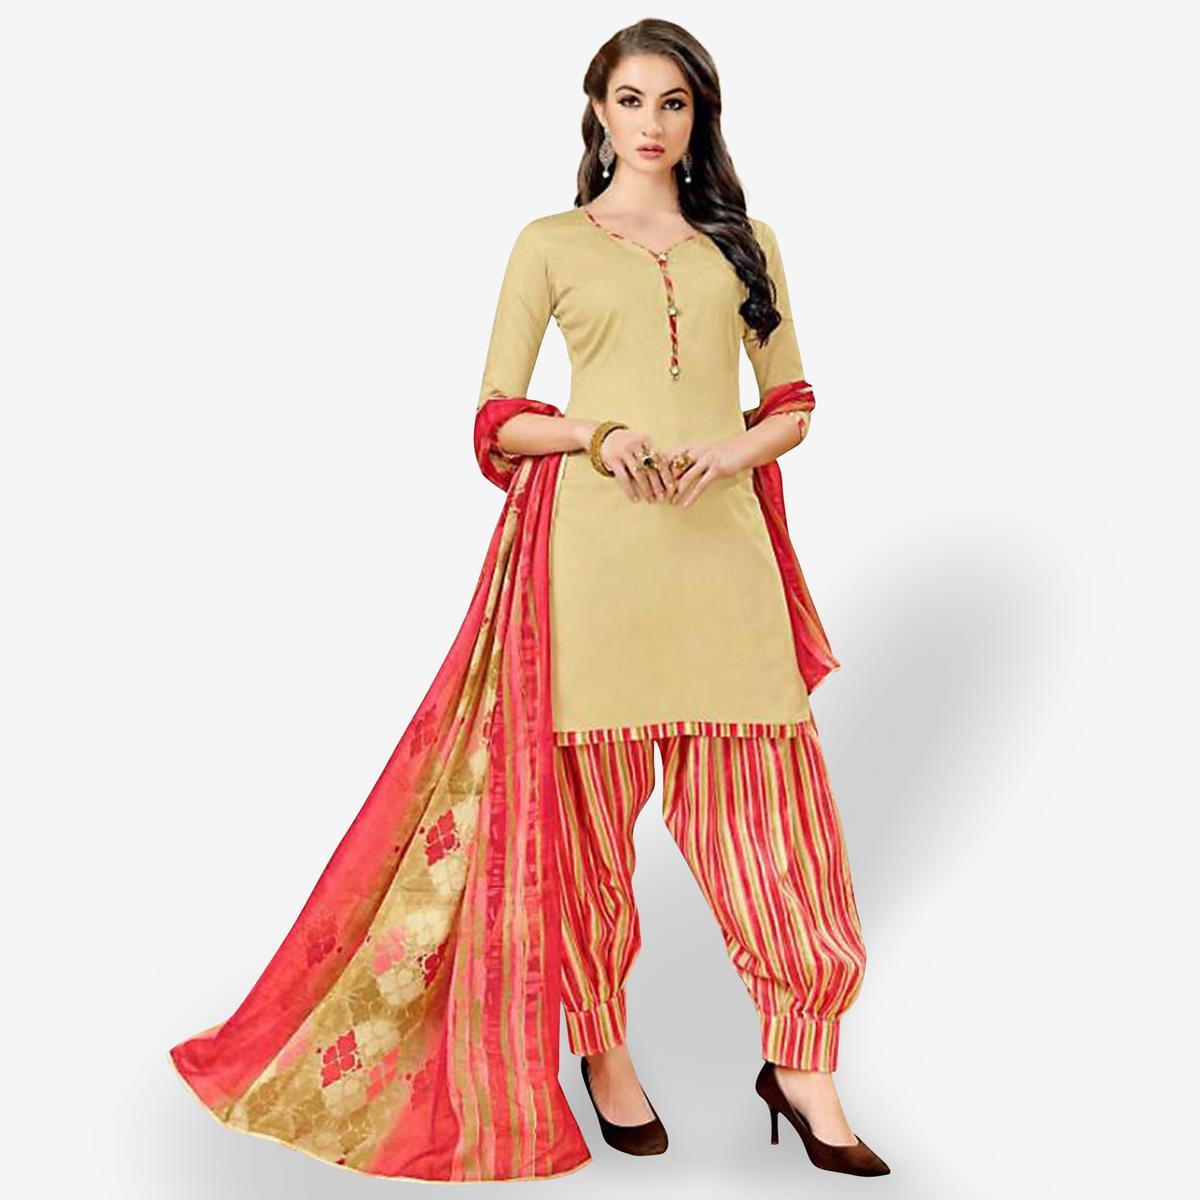 Alluring Beige Colored Casual Wear Printed Crepe Patiala Suit